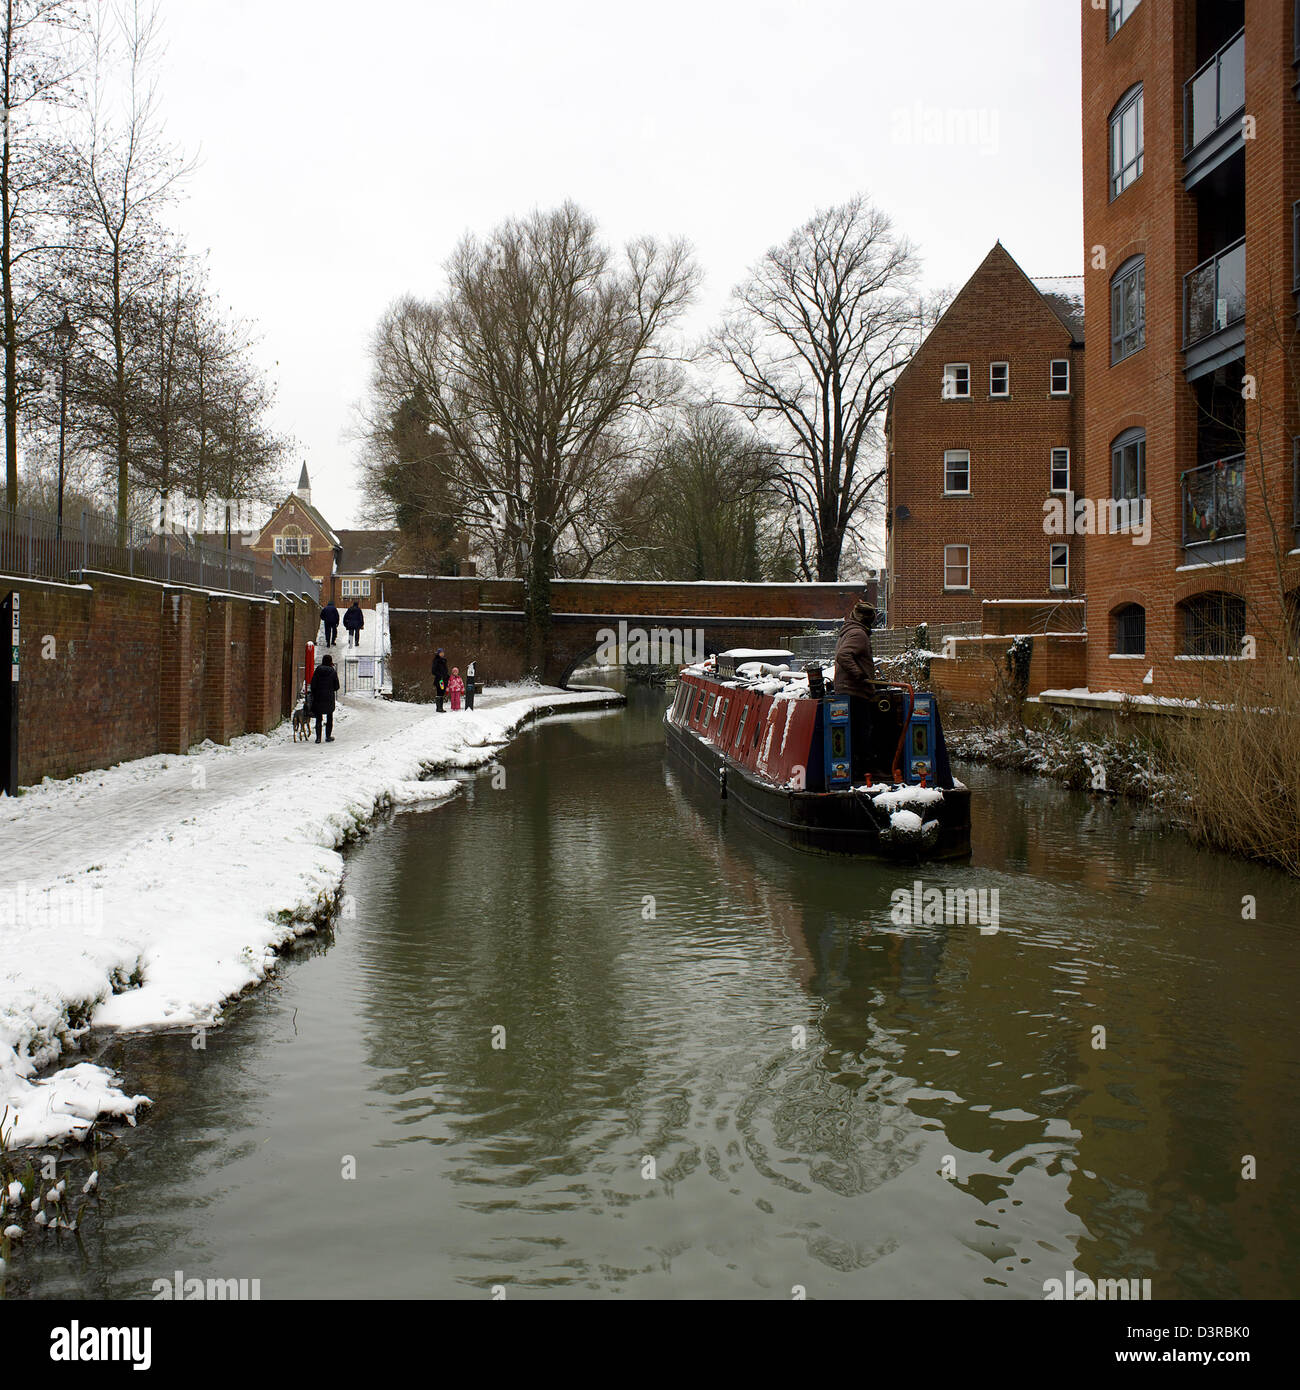 Winter on the South Oxford Canal, City of Oxford, Oxfordshire, Oxon, England, boat, narrowboat, narrow boat, snow, - Stock Image